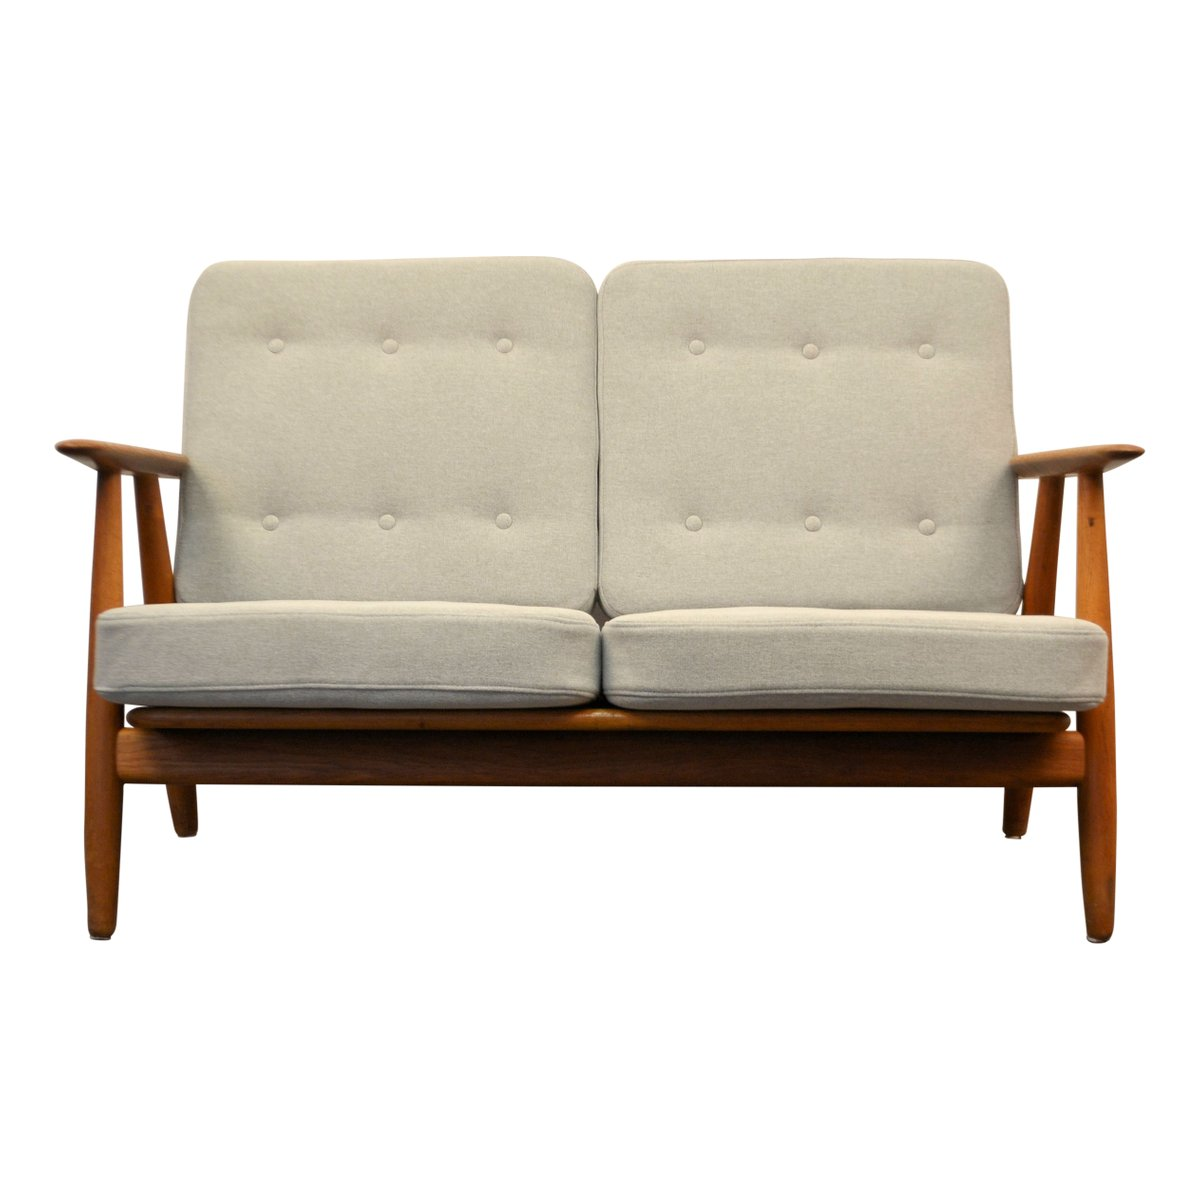 mid century cigar ge 240 oak sofa by hans j wegner for getama for sale at pamono. Black Bedroom Furniture Sets. Home Design Ideas